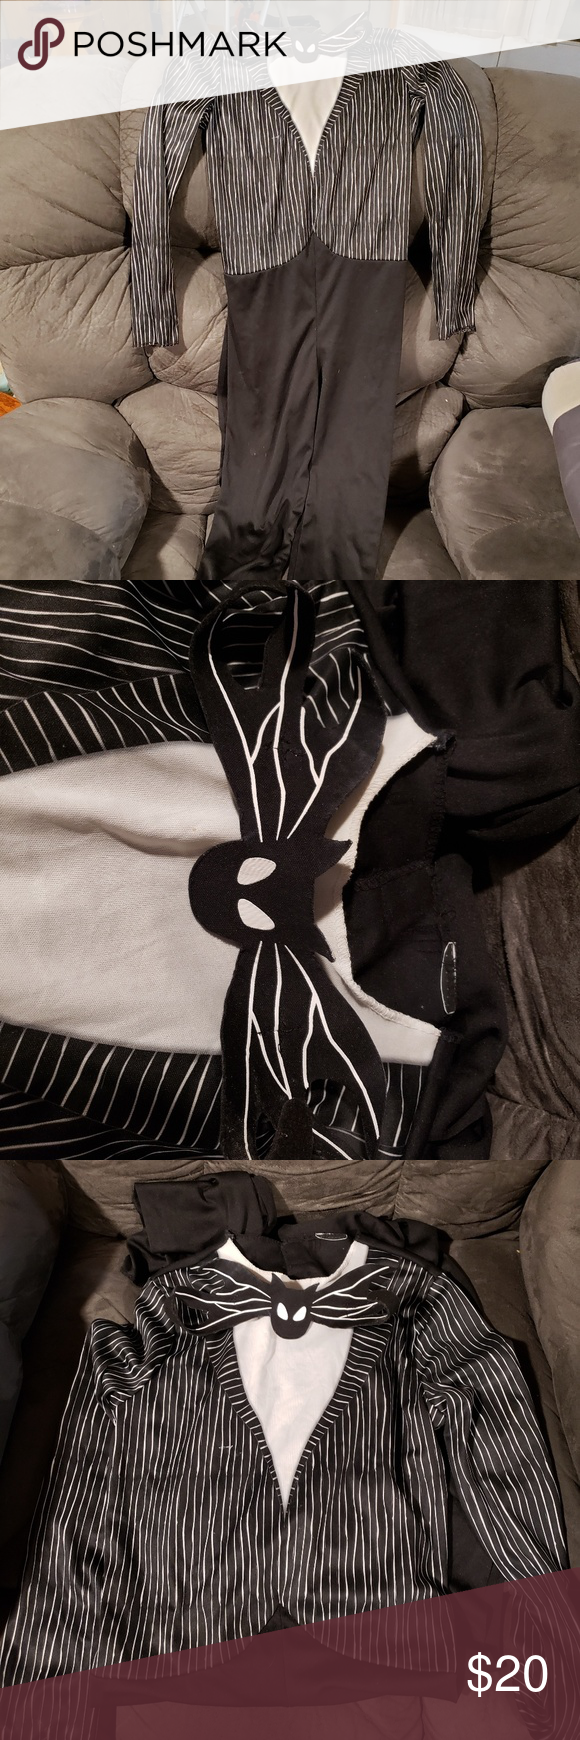 Jack skellington costume (With images) Jack skellington